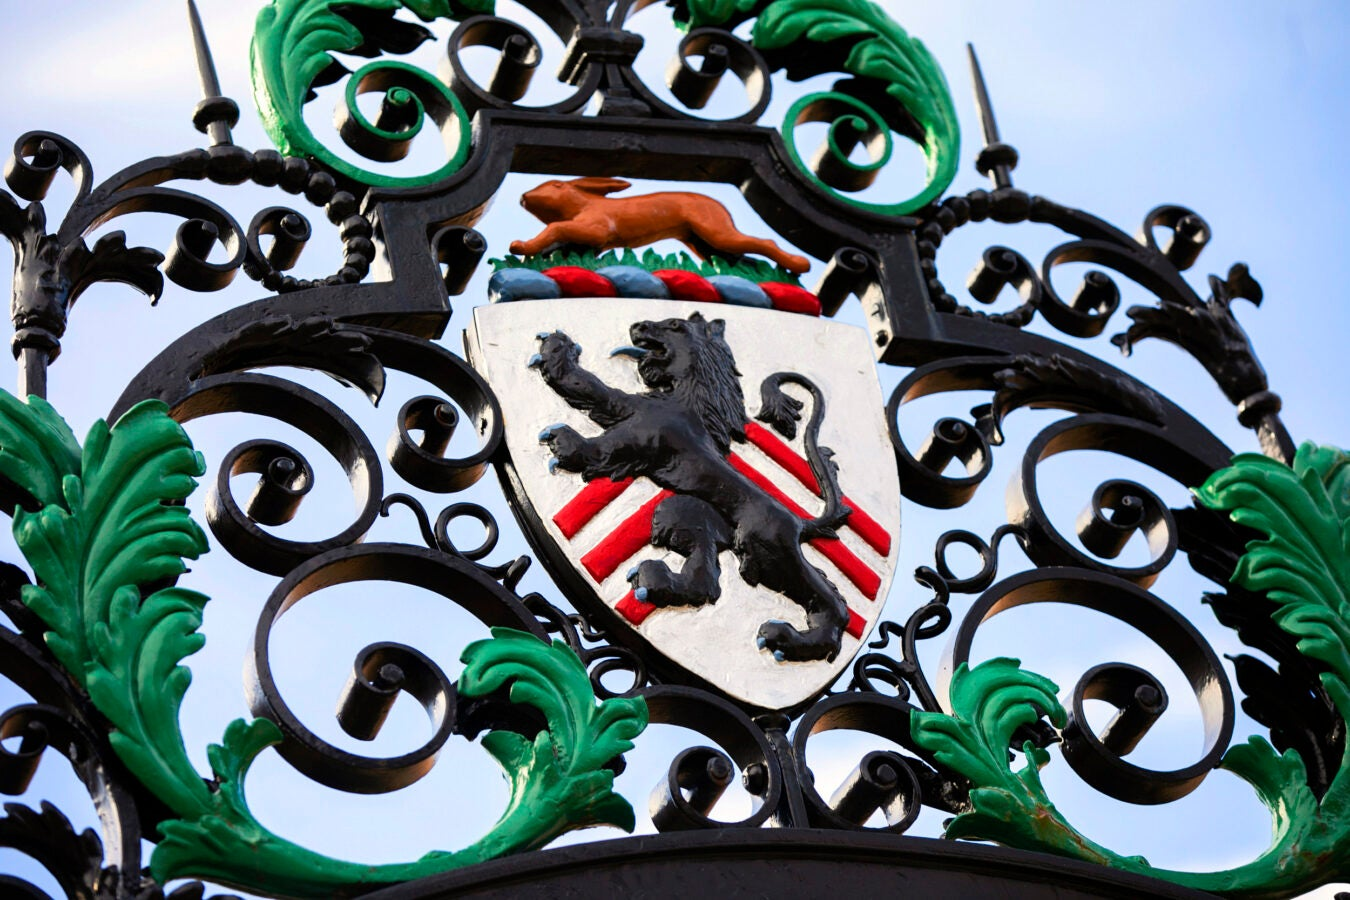 A rabbit leaps over the lion crest on the wrought-iron gate.